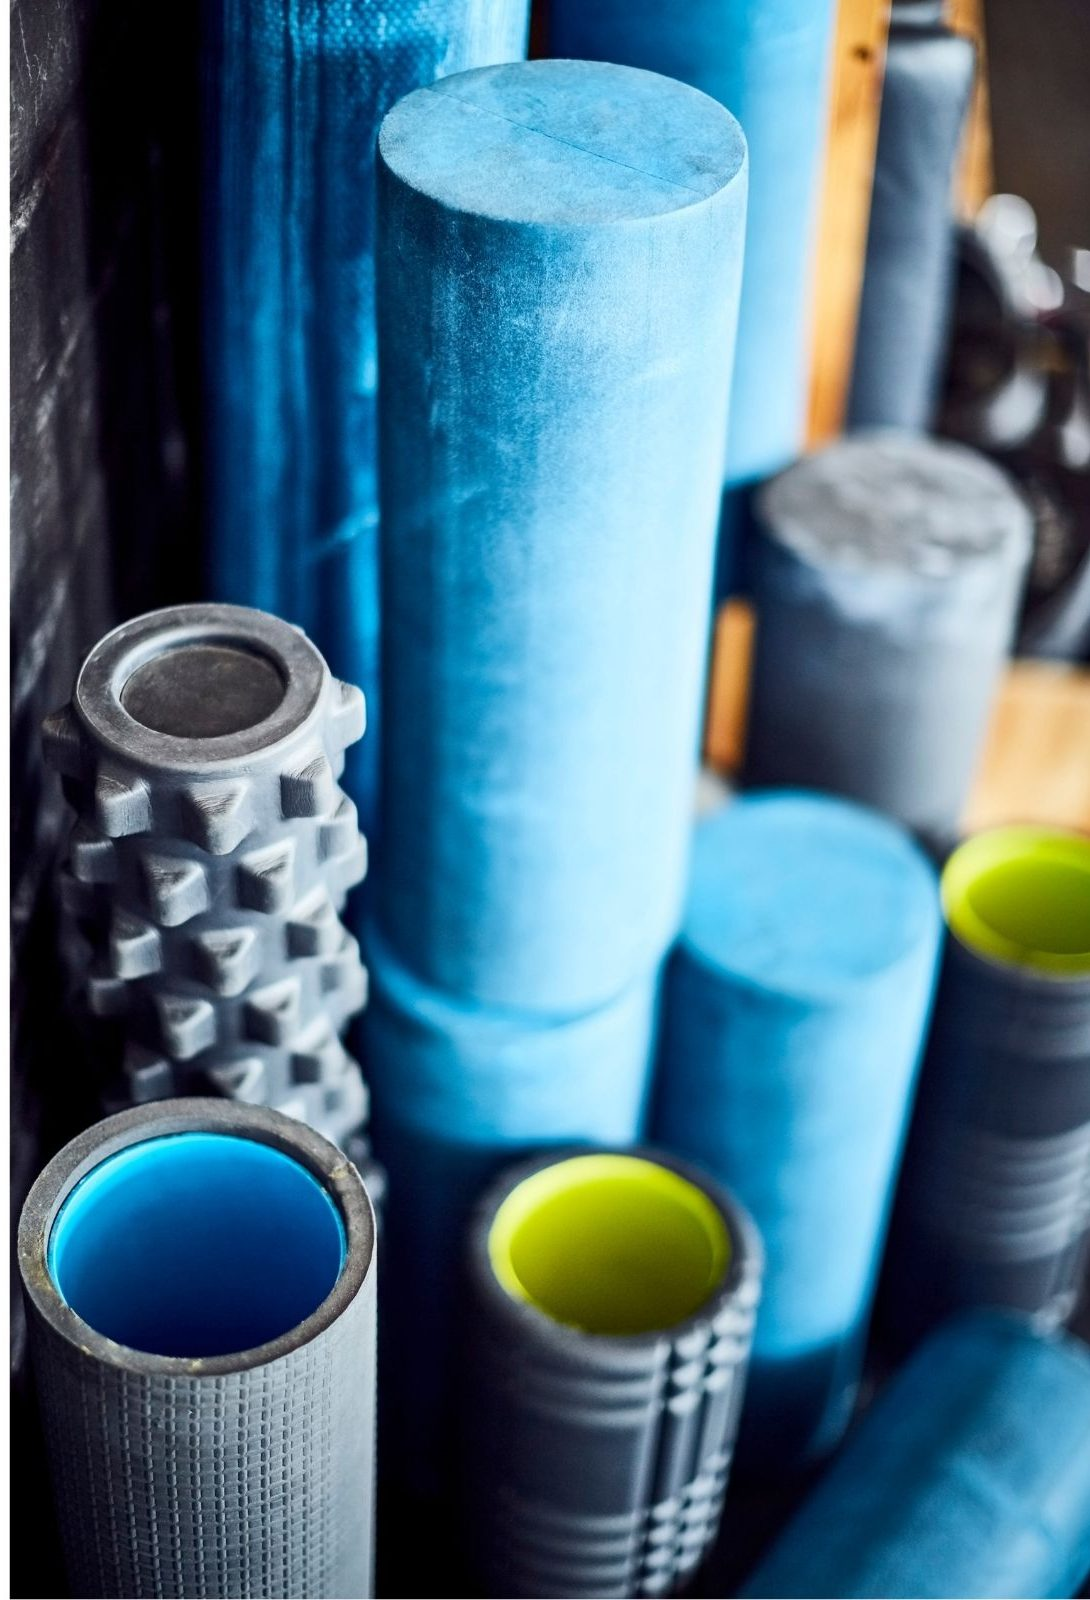 Foam Roller - Used to help with Flexibility